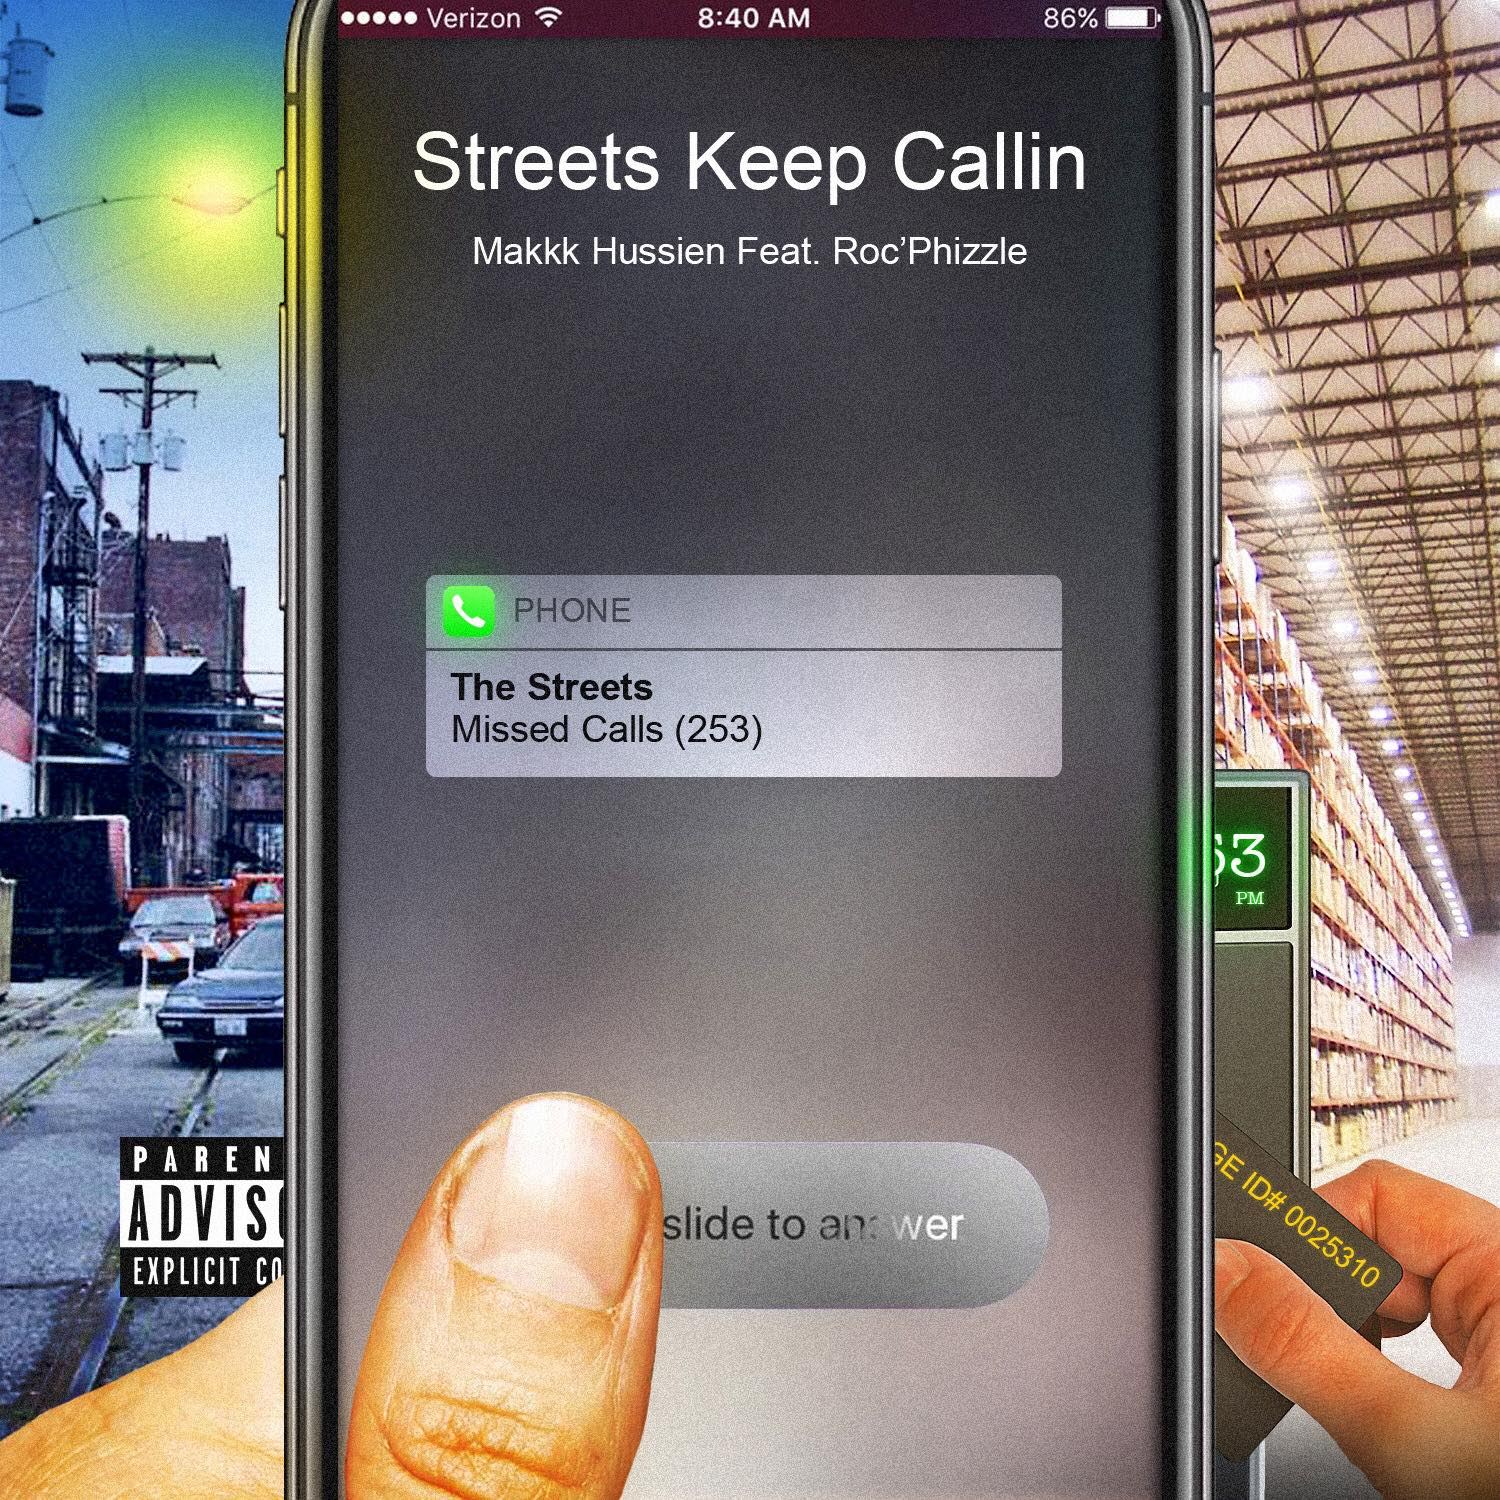 """Cover for Makkk Hussien's """"Streets Keep Callin'"""" features a cell phone with a missed call. On the left side of the phone is a urban street and on the right side of the phone is a warehouse with a time card being punched in."""